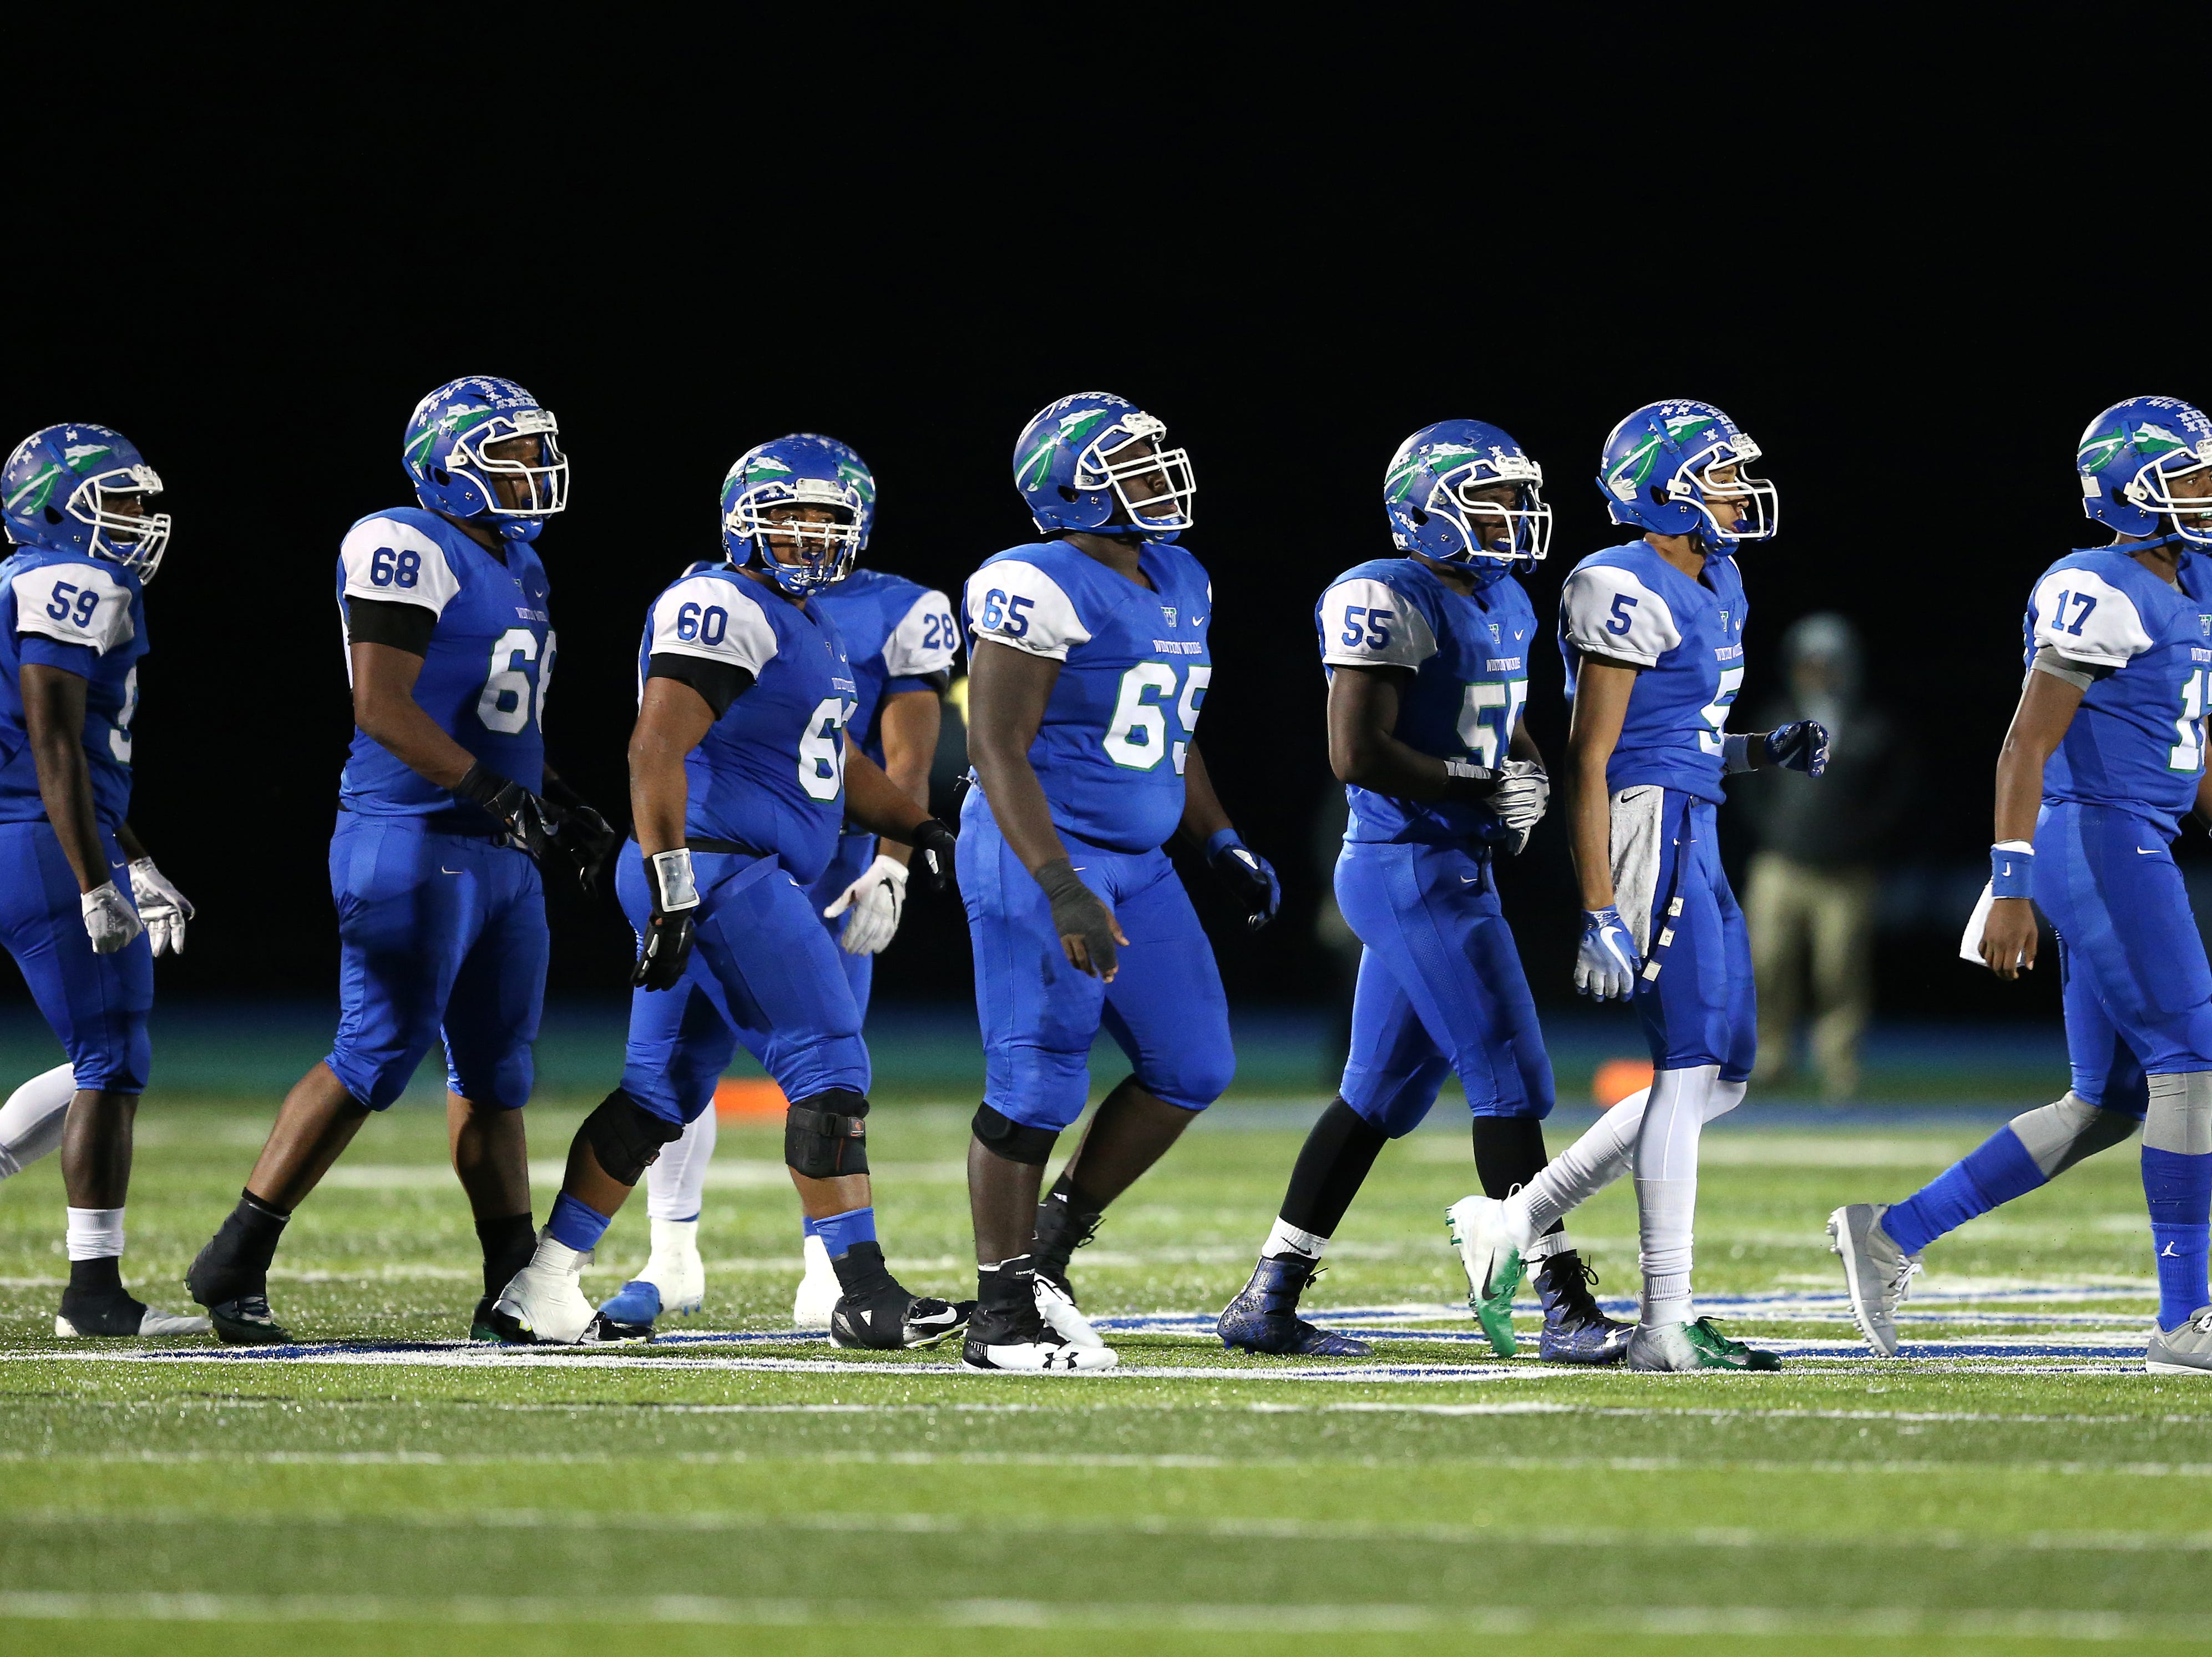 The Winton Woods Warriors offense looks toward the sideline in the first quarter during a high school football game between St. Francis de Sales and Winton Woods, Friday, Oct. 19, 2018, at Winton Woods High School in Forest Park, Ohio.